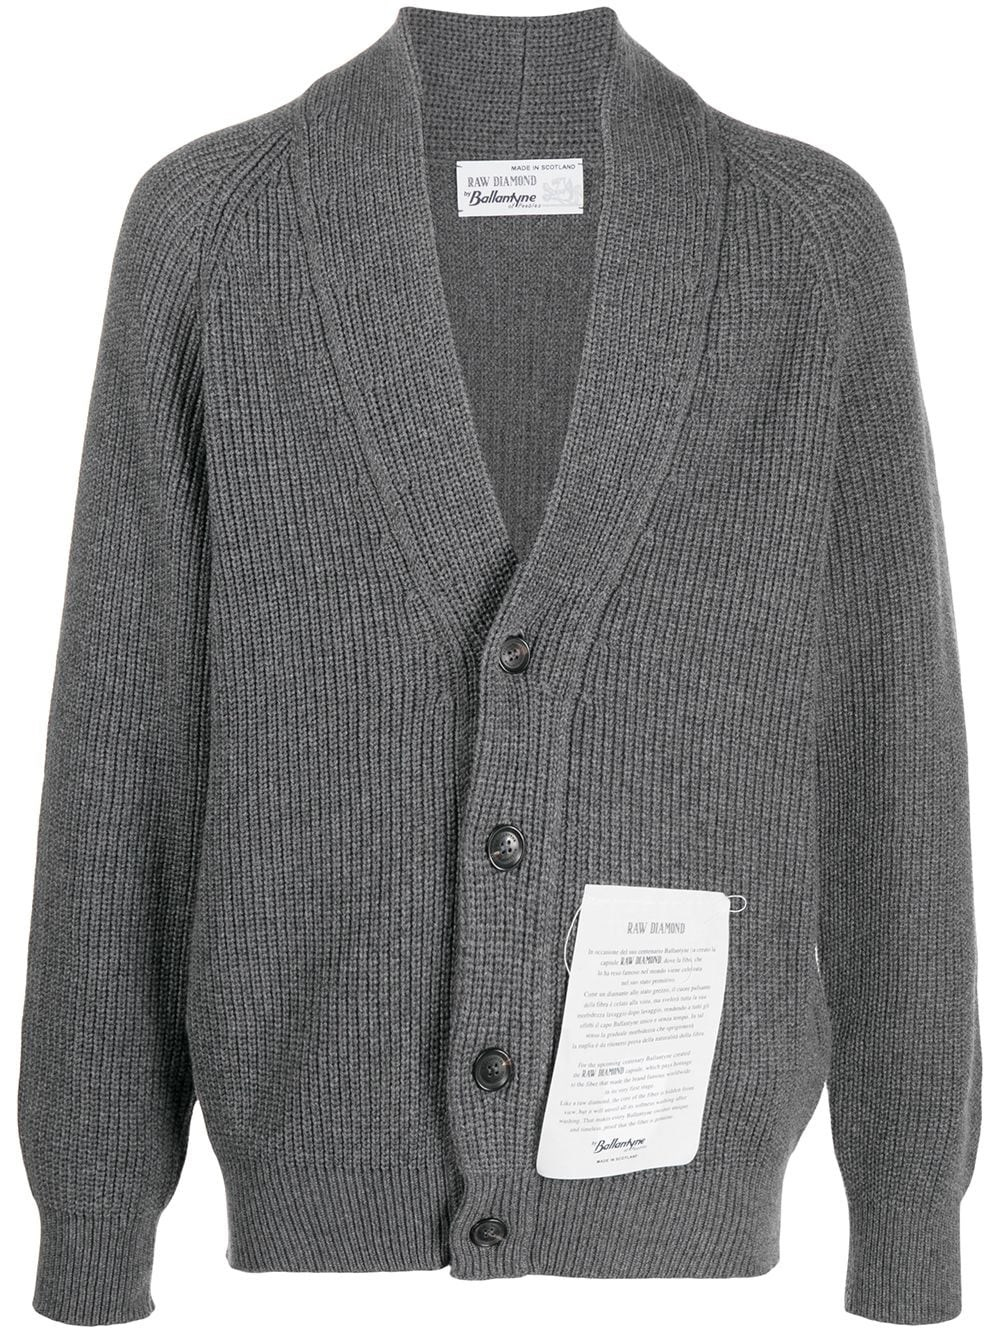 RAW DIAMOND BY BALLANTYNE Button-Up Cashmere Cardigan